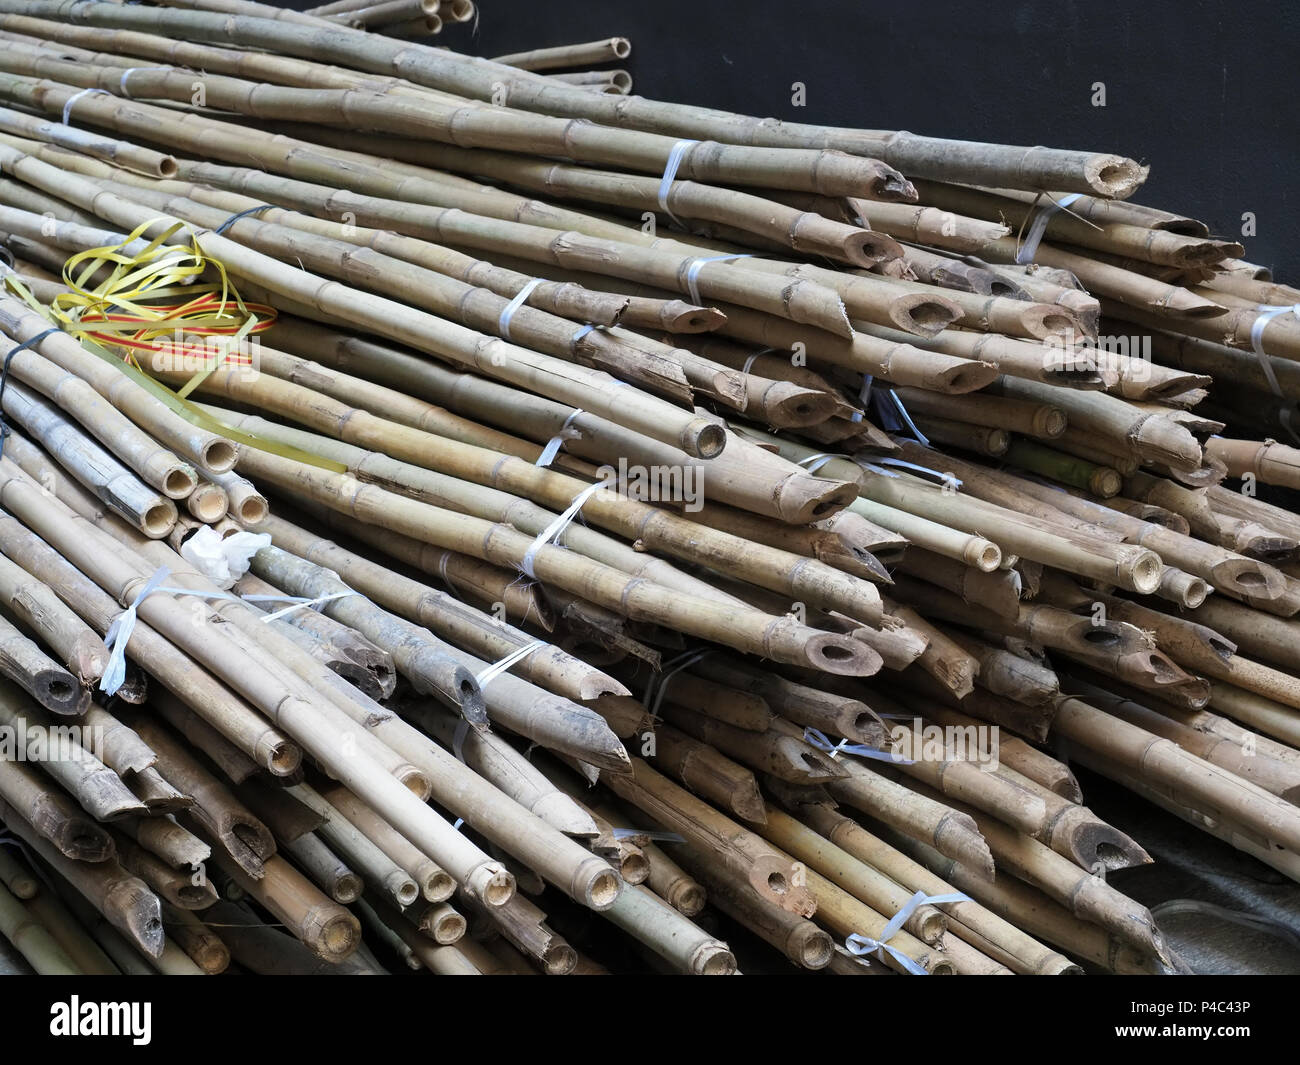 View of a pile of Bamboo scaffolding stored on the ground in Hong Kong - Stock Image